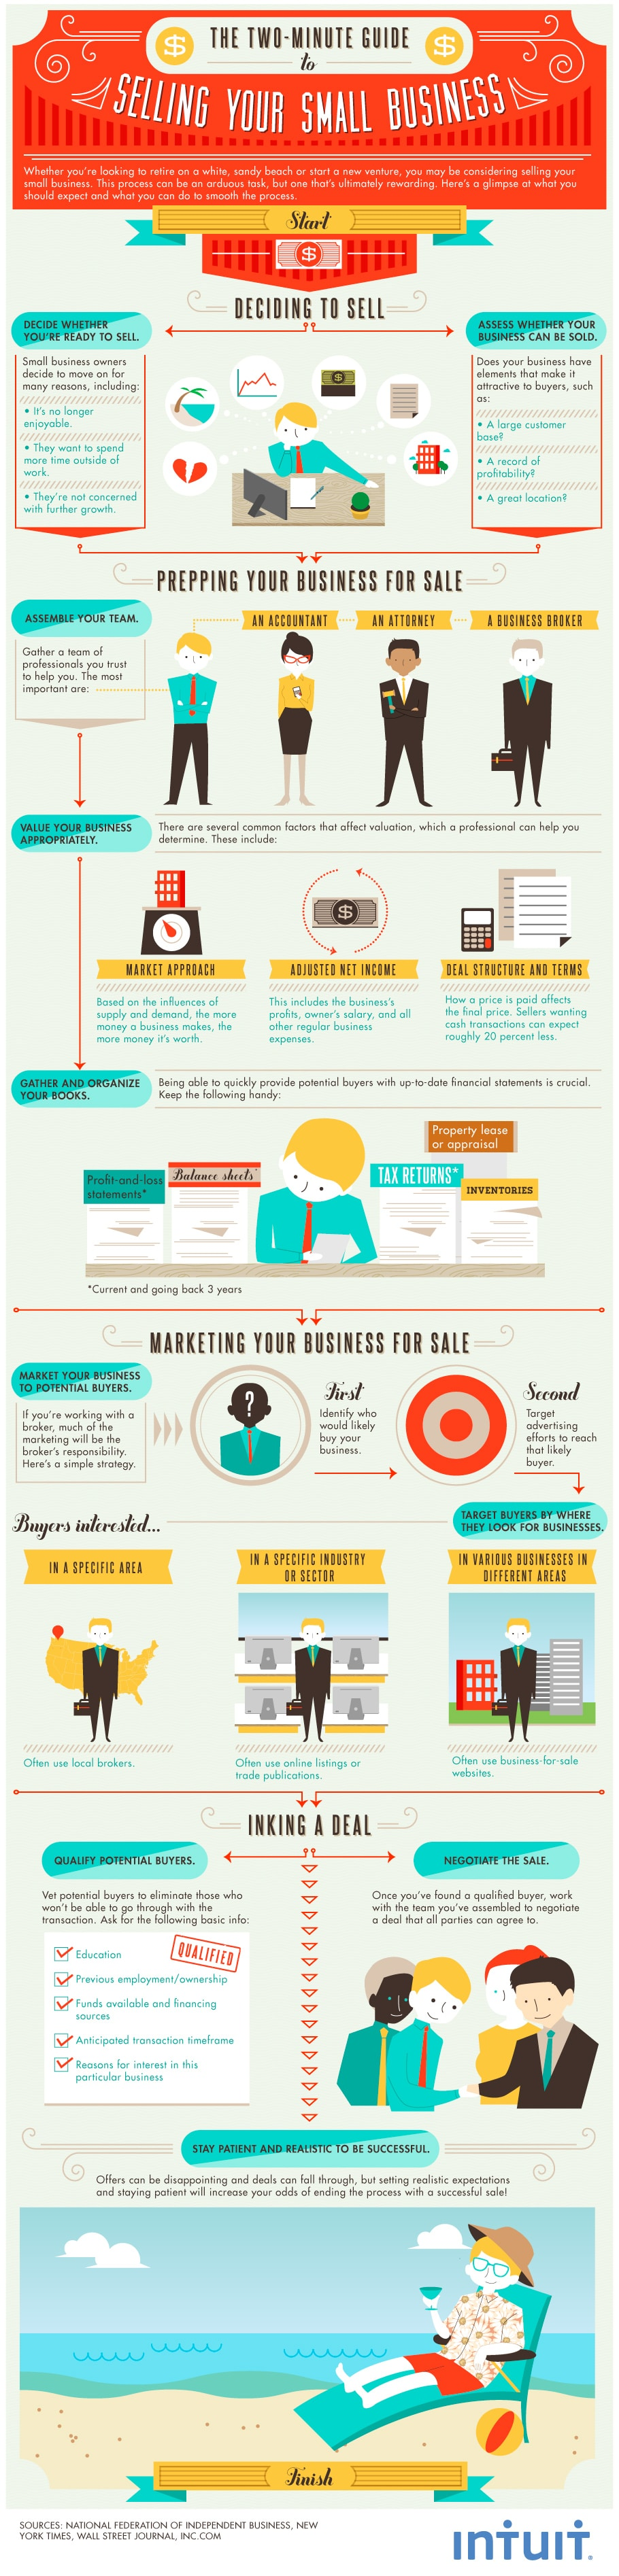 Simple Guide To Selling Your Small Business [Infographic]